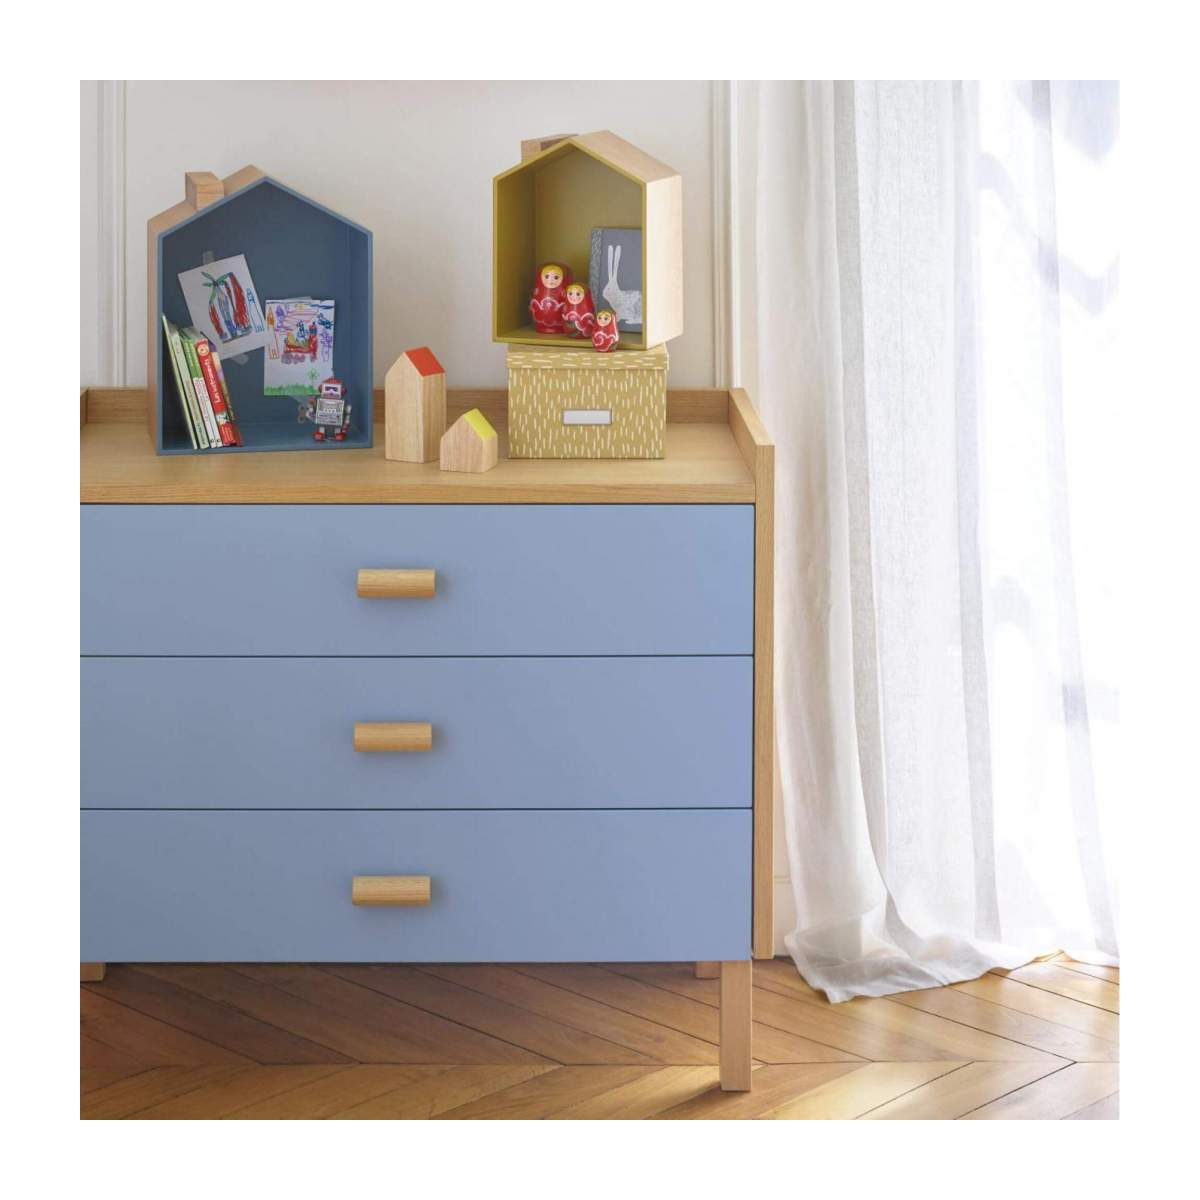 Set of 2 shelves made of oak, natural, grey-blue and yellow n°10